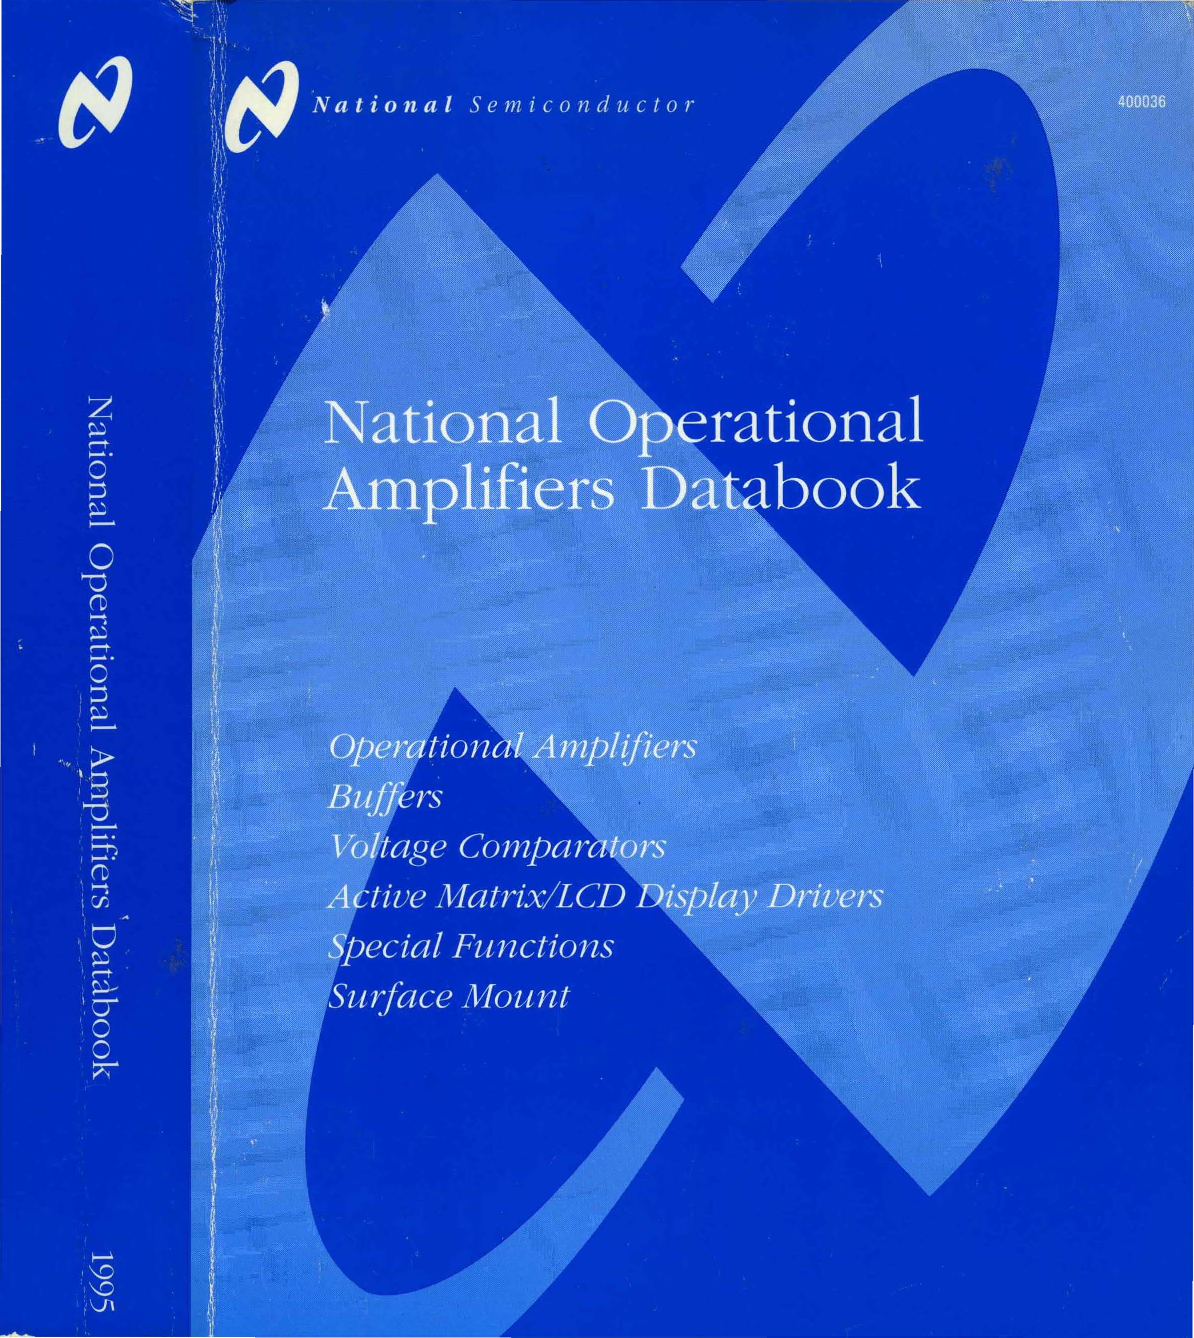 1995 National Operational Amplifiers Databook Dual Power Quad Opamp Circuit Filtercircuit Basiccircuit